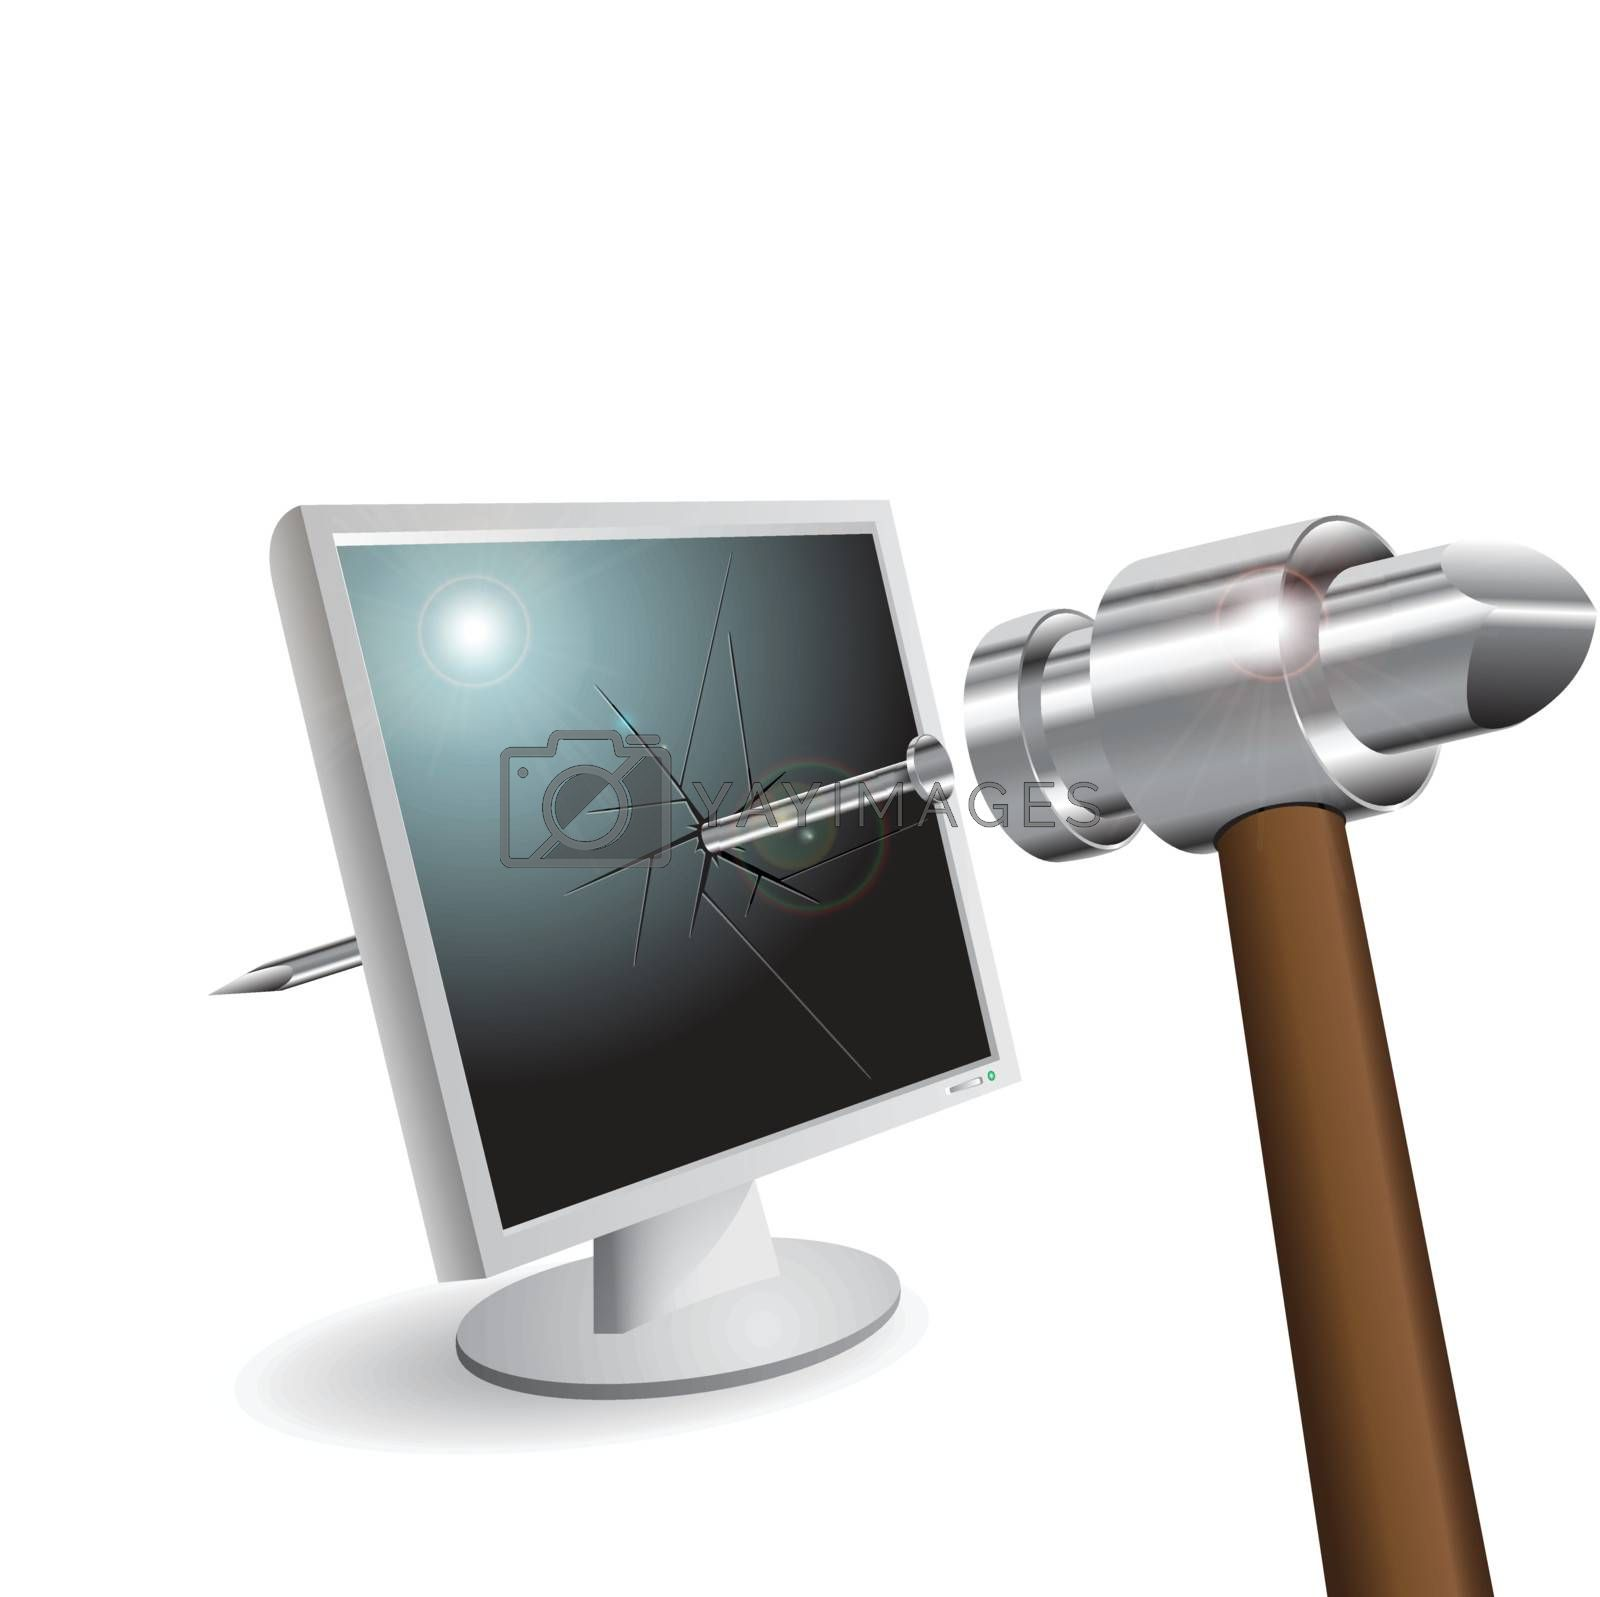 illustration, gavel hammers a nail with liquid-cristal monitor